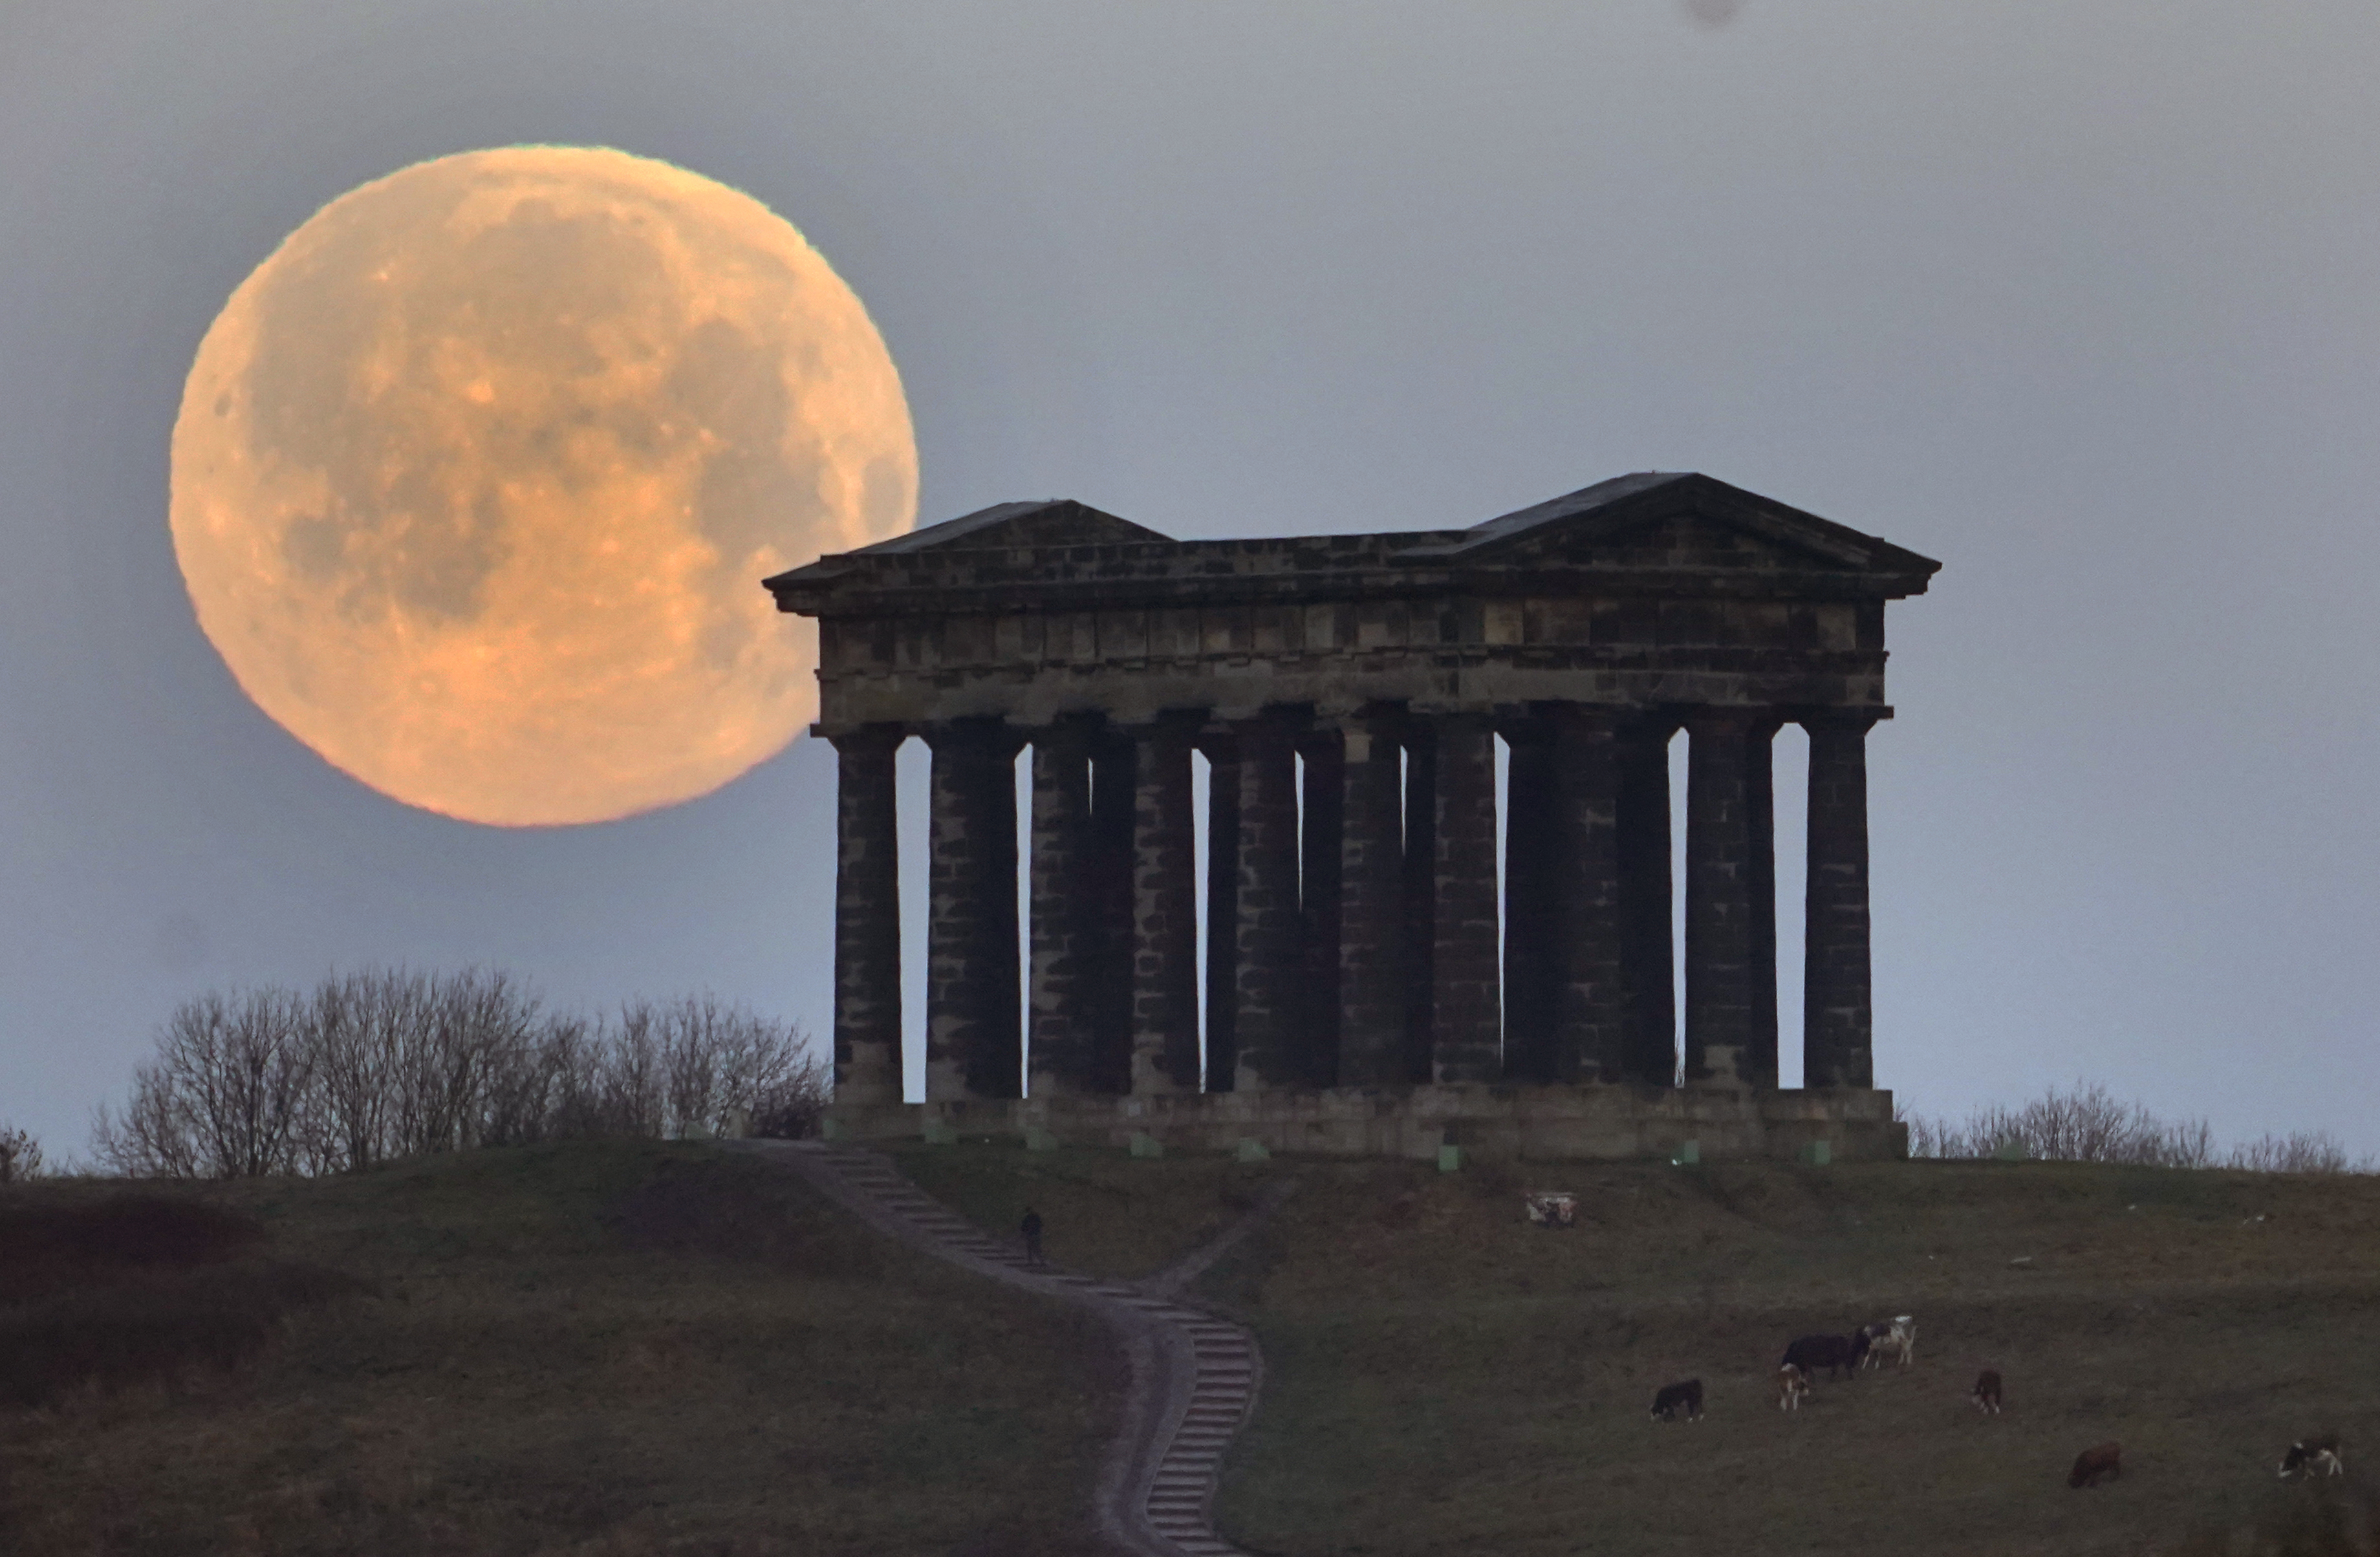 The December full moon sets behind the Penshaw Monument, near Sunderland. Elsewhere in the UK, the Met Office issued fresh warnings for snow for Wednesday, with the potential to cause rail and road closures, power cuts, and injuries.